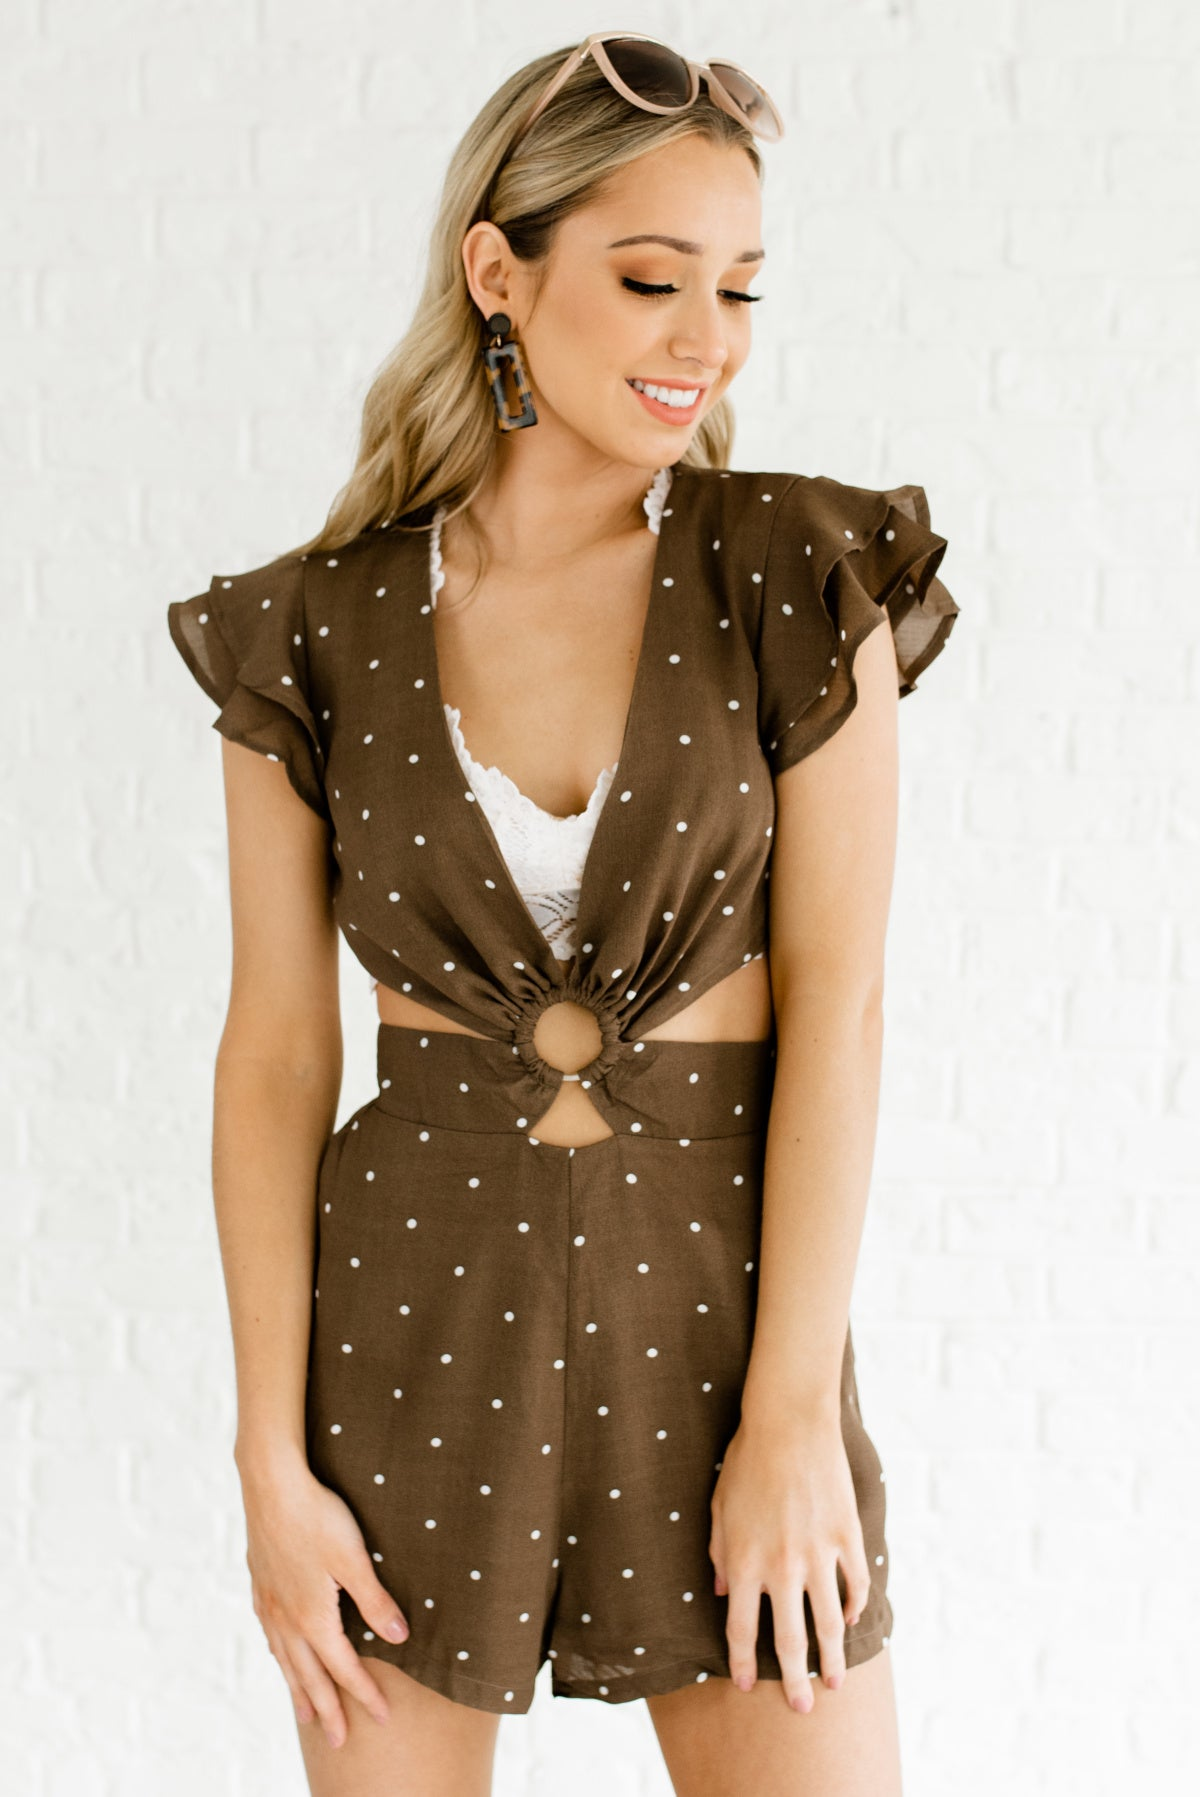 Brown and White Polka Dot Patterned Boutique Rompers for Women